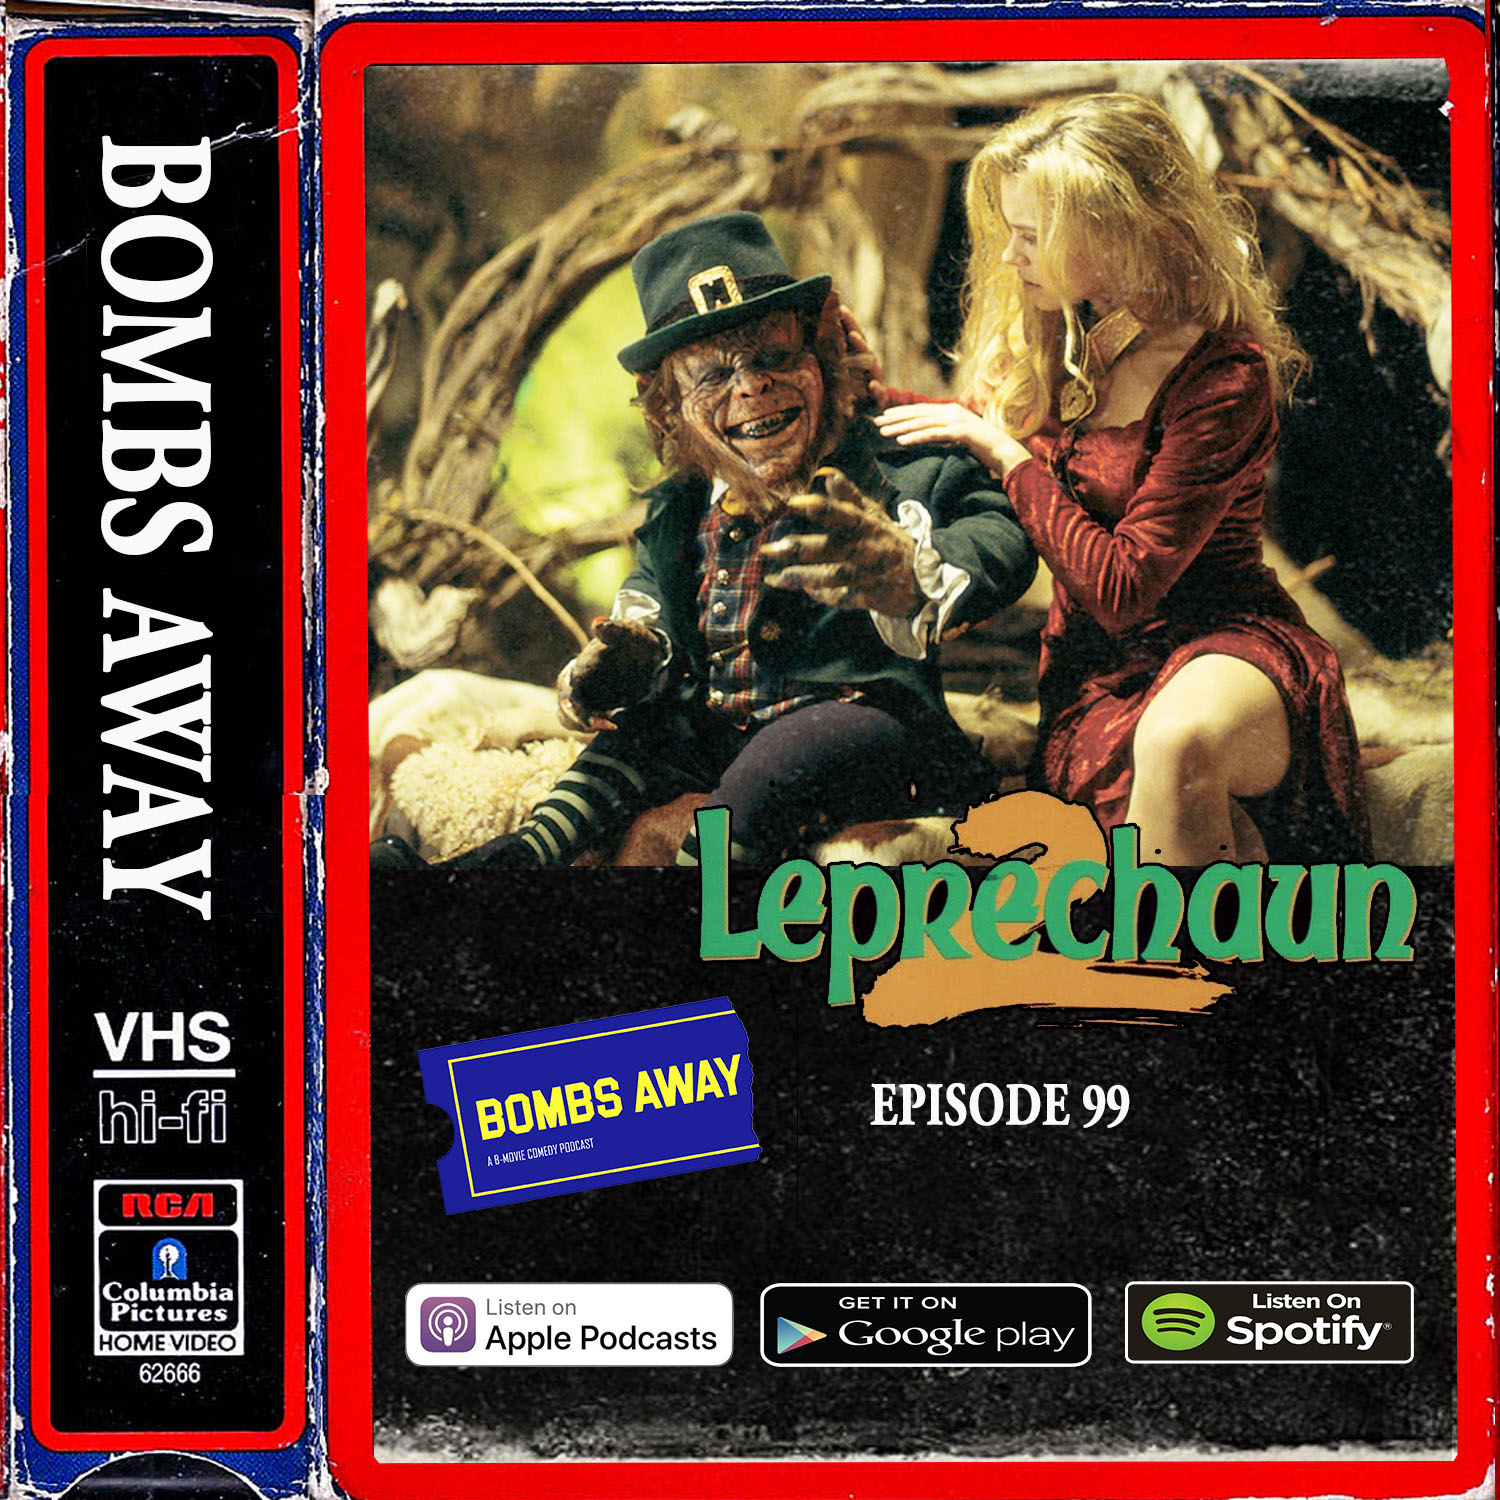 St. Patrick's Day 2019 - Episode 99 - Leprechaun 2 (1994)